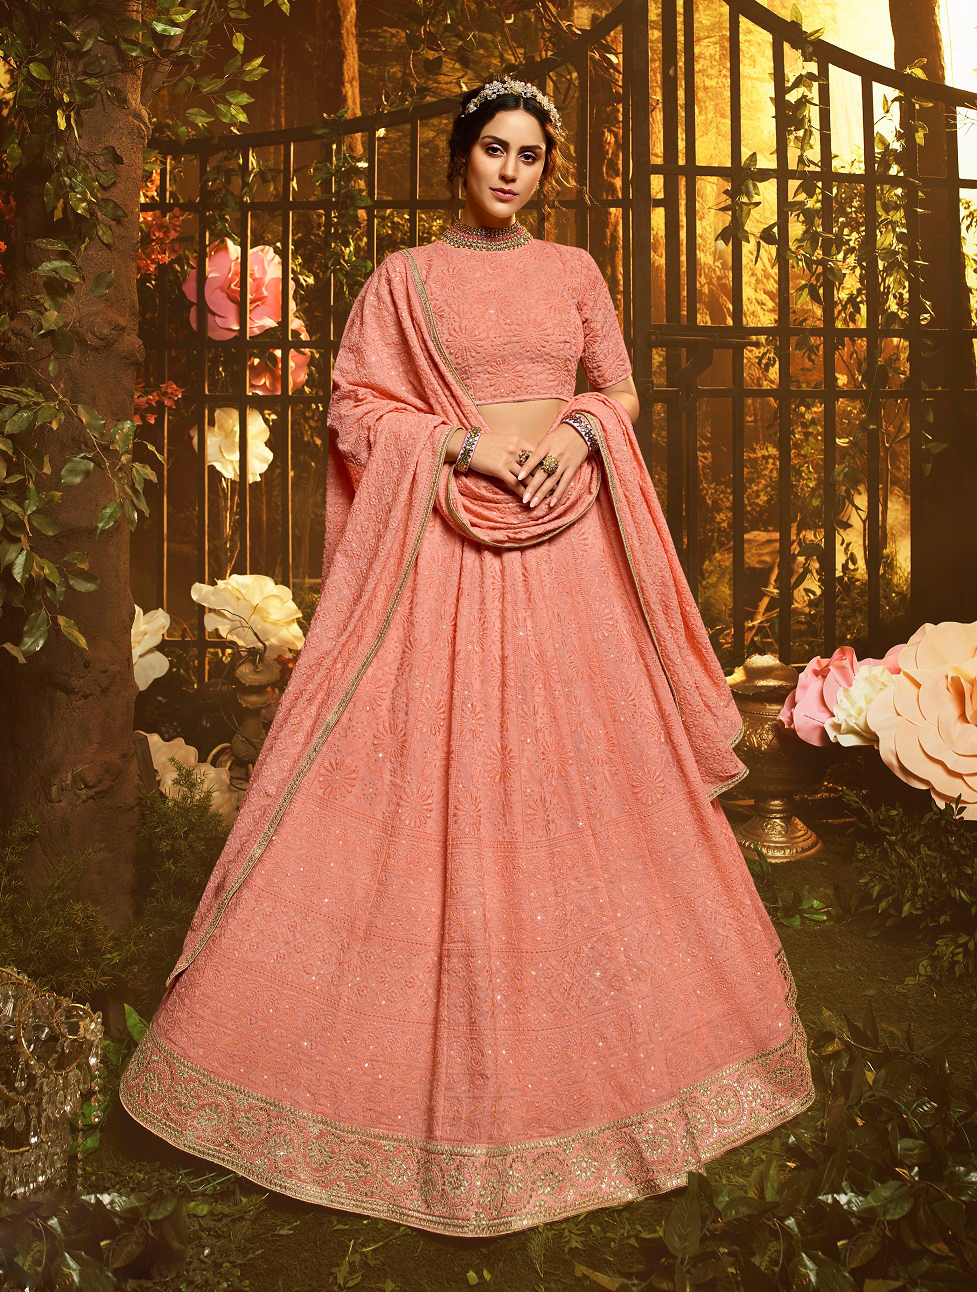 New designer best georgetee pink color gown and soft net dupatta.